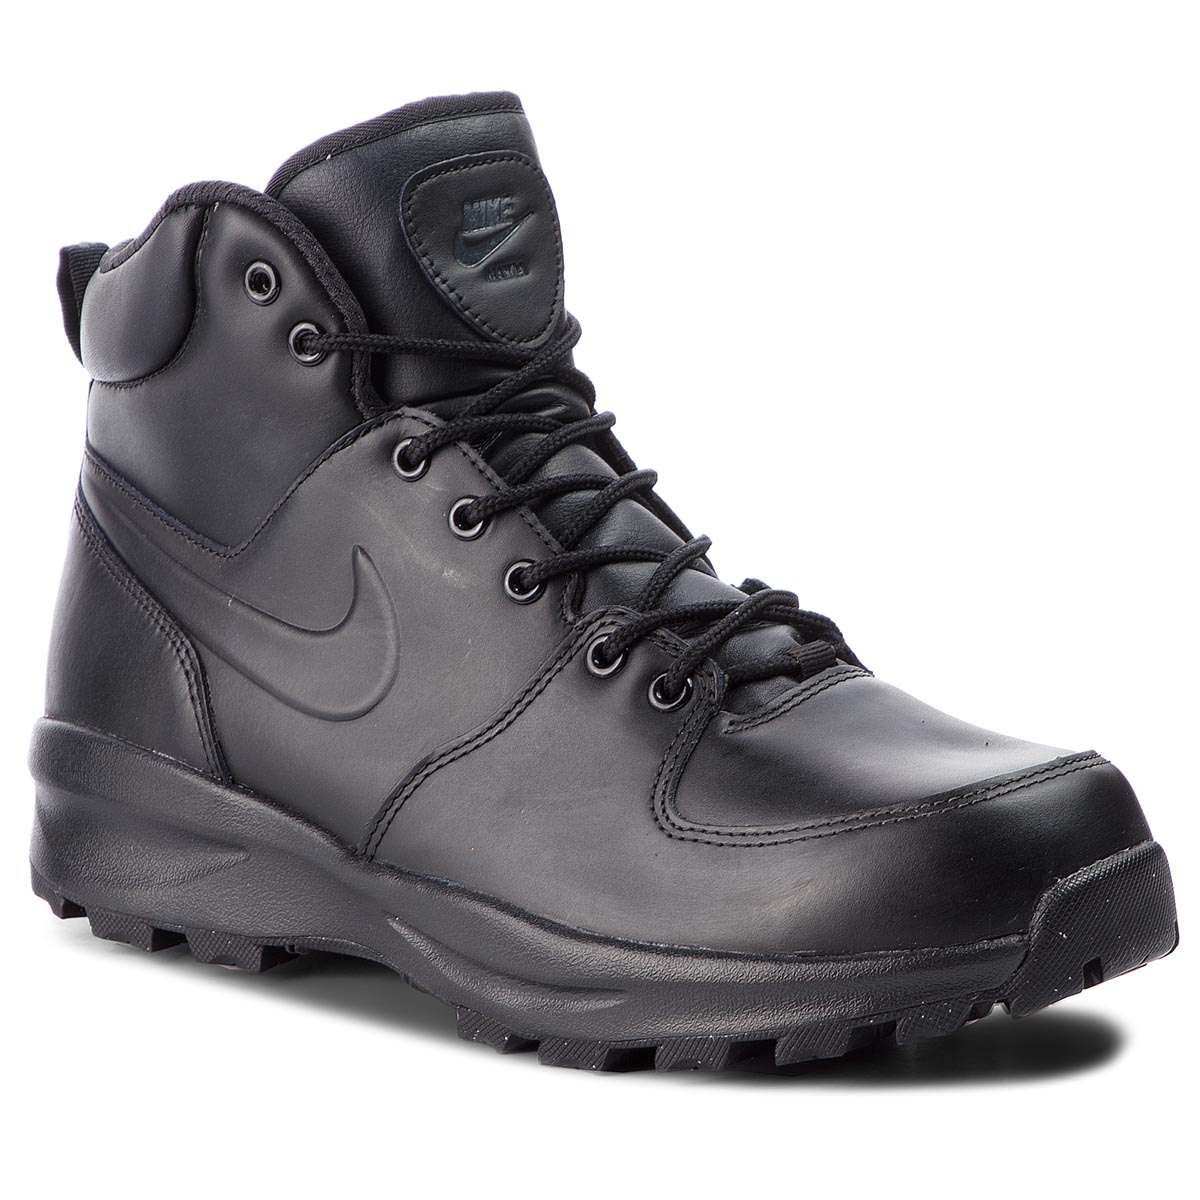 Batai NIKE - Manoa Leather 454350 003 Black/Black/Black